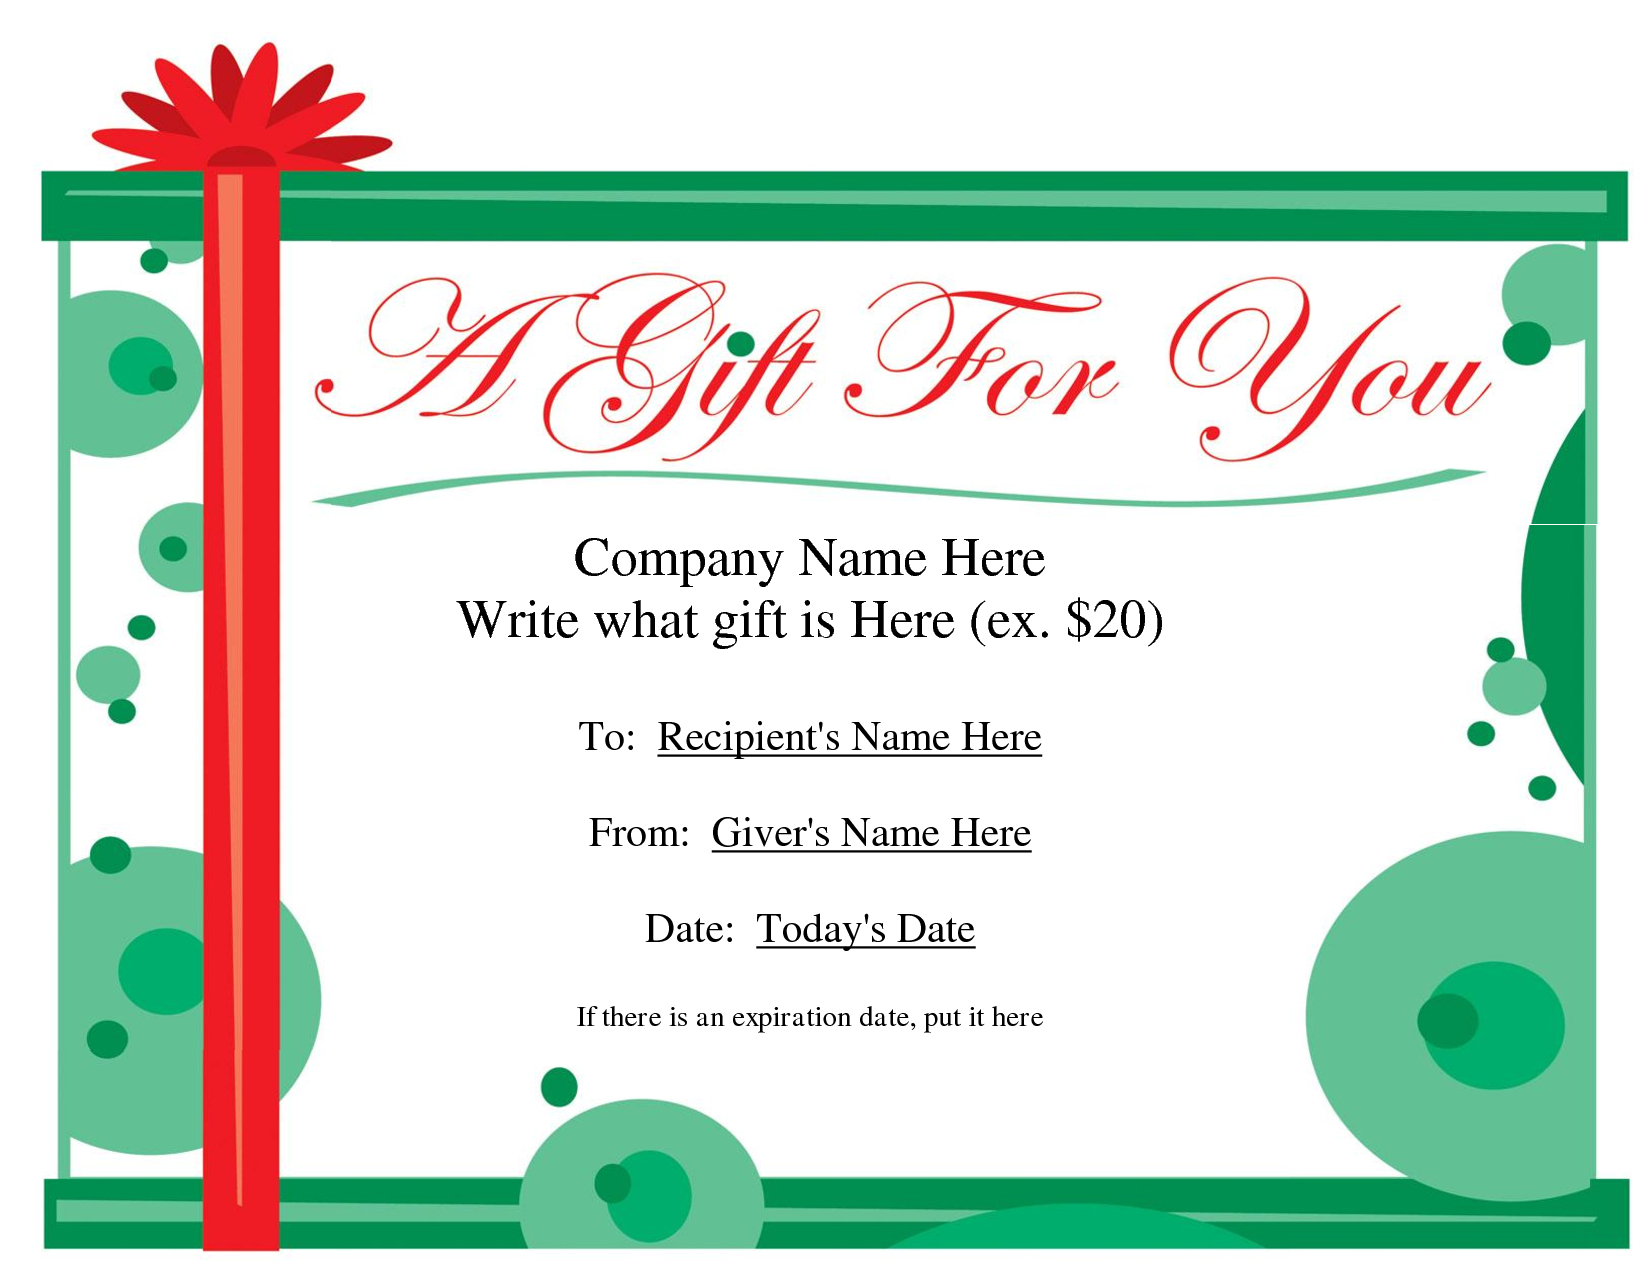 Free Christmas Gift Certificate Templates | Ideas For The House - Free Printable Gift Vouchers Uk